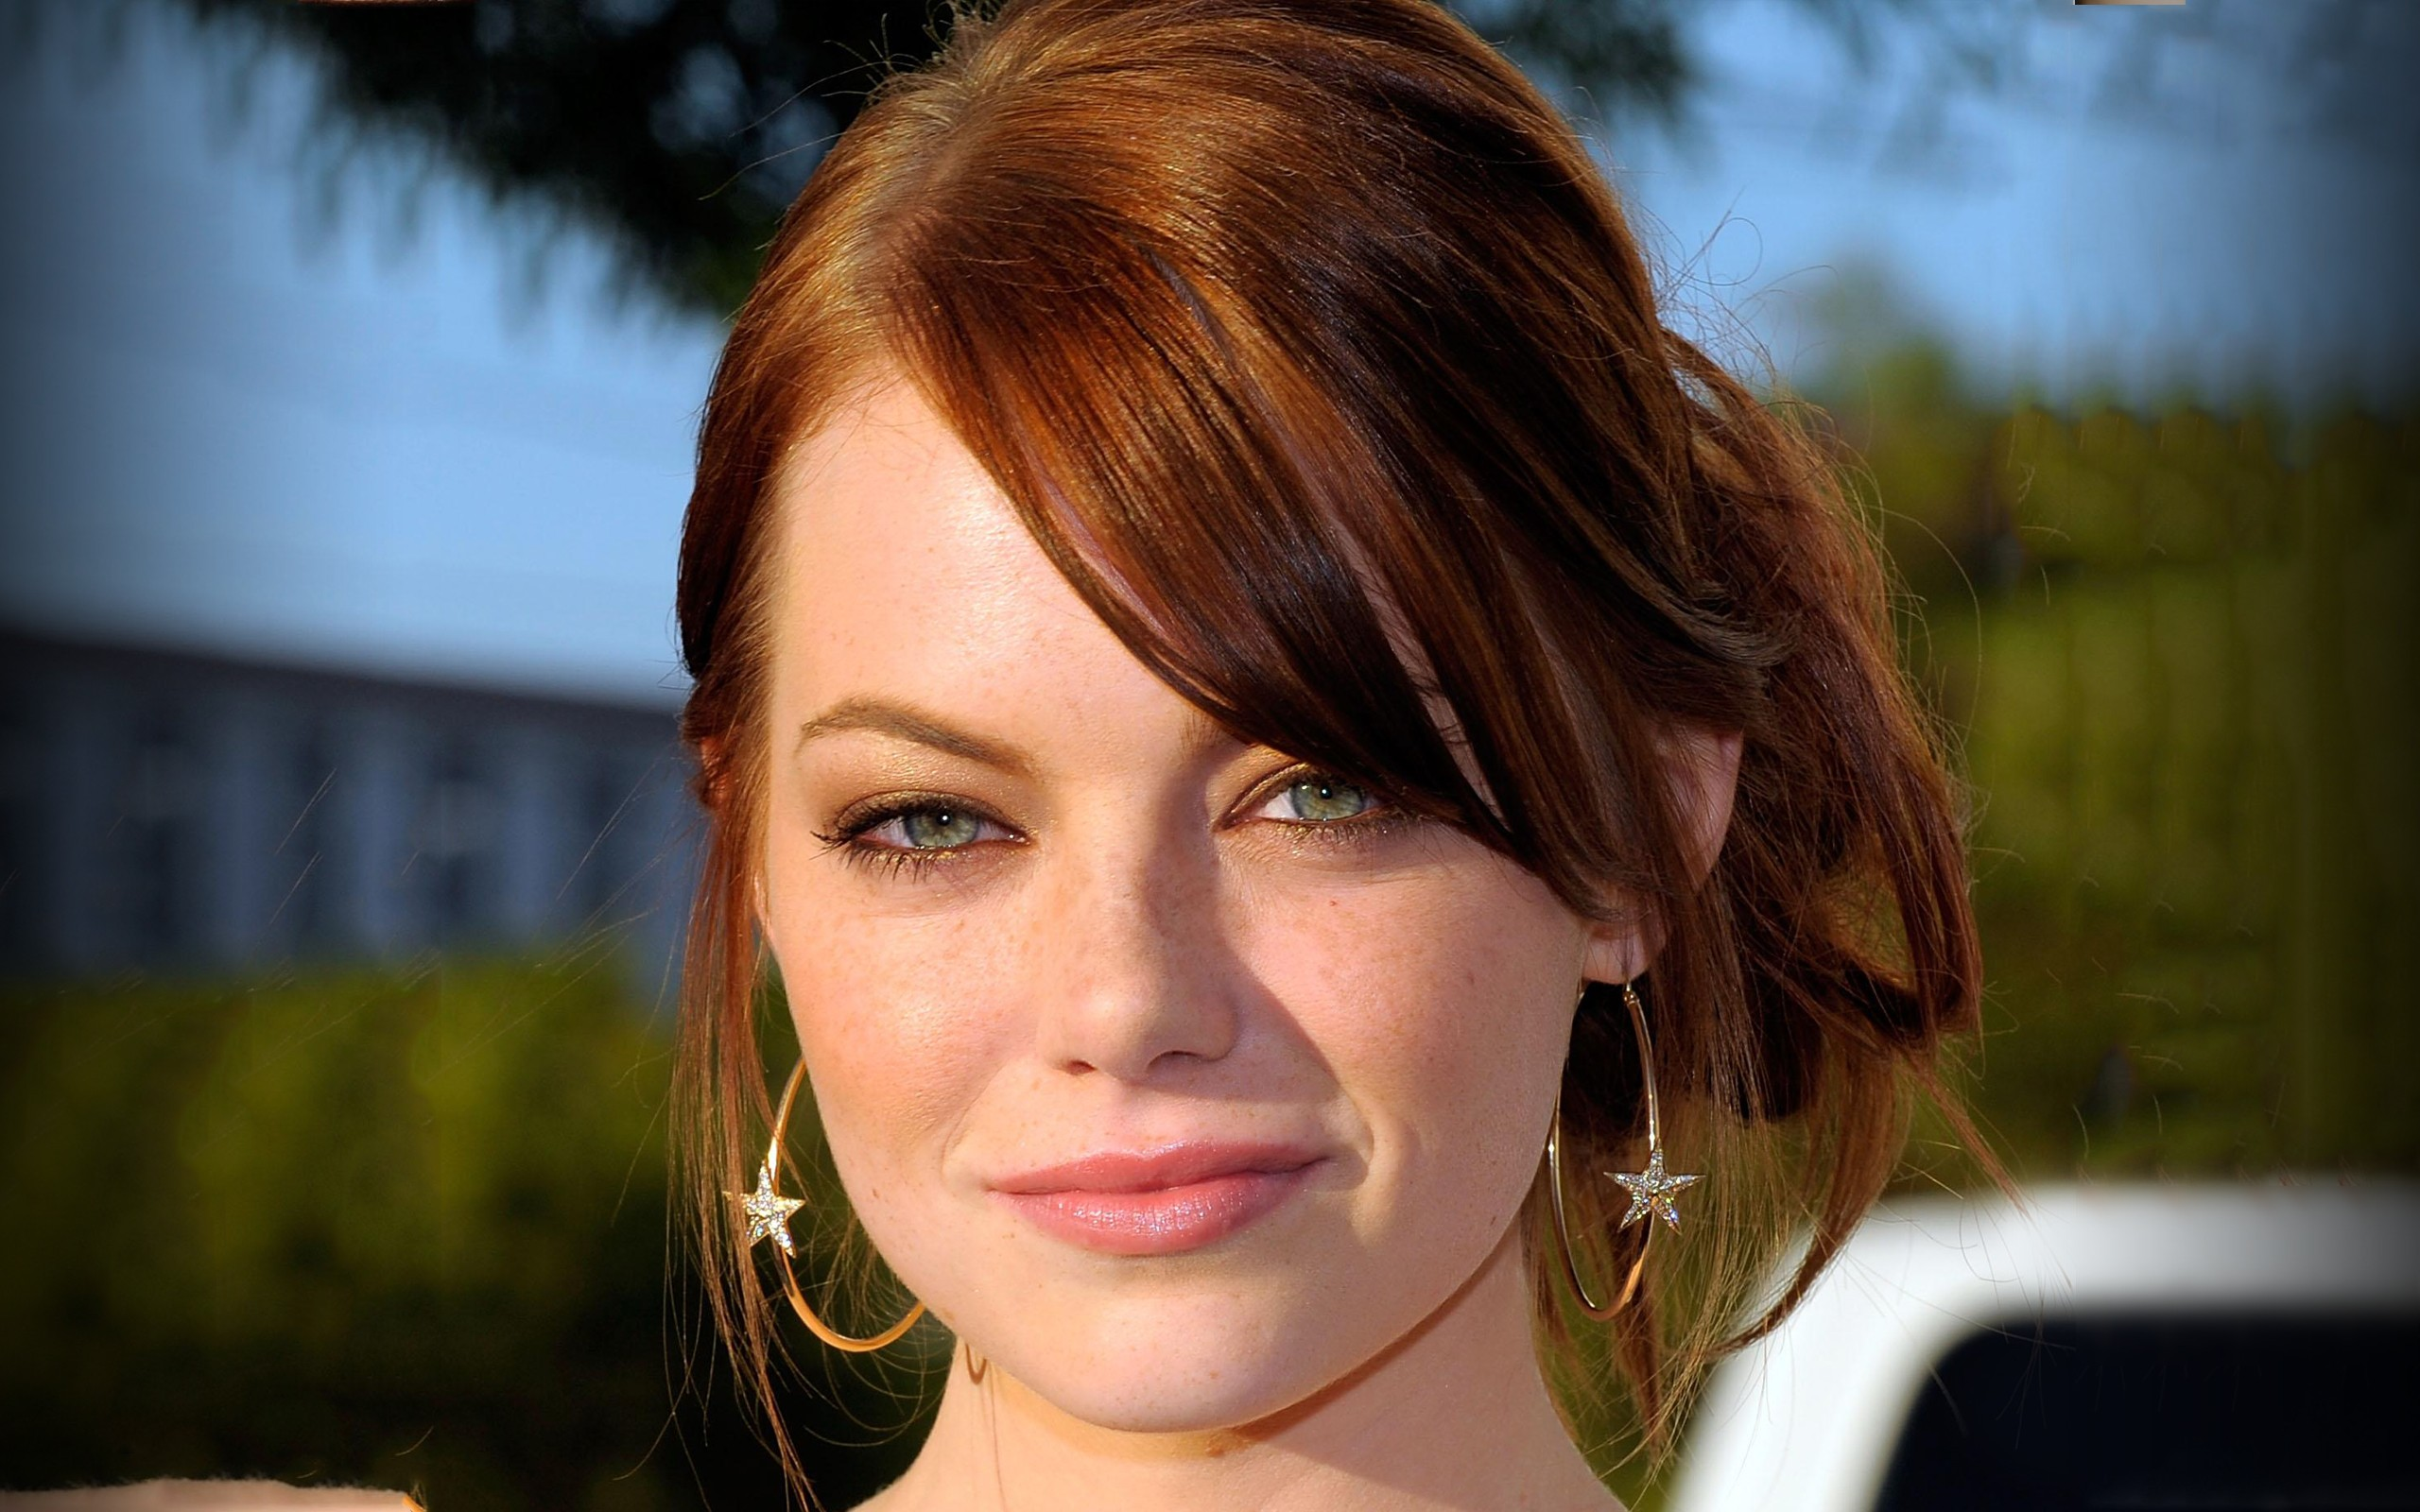 Emma stone backgrounds pictures images - Emma stone wallpaper ...